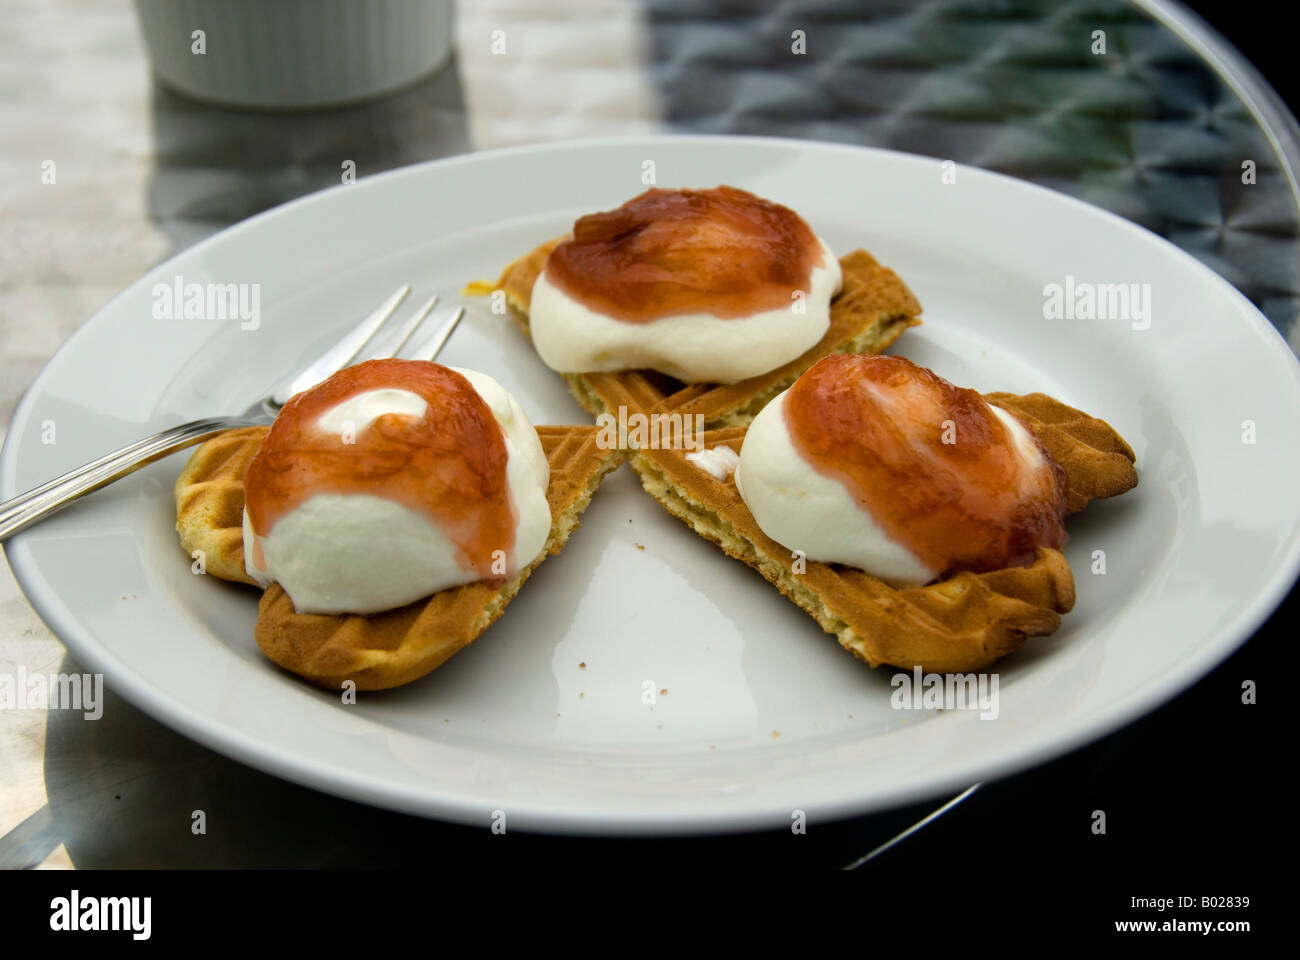 Waffles with cream and rhubarb preserve at the Debesarcafé, in the village of Gjógv, Faroe Islands Stock Photo